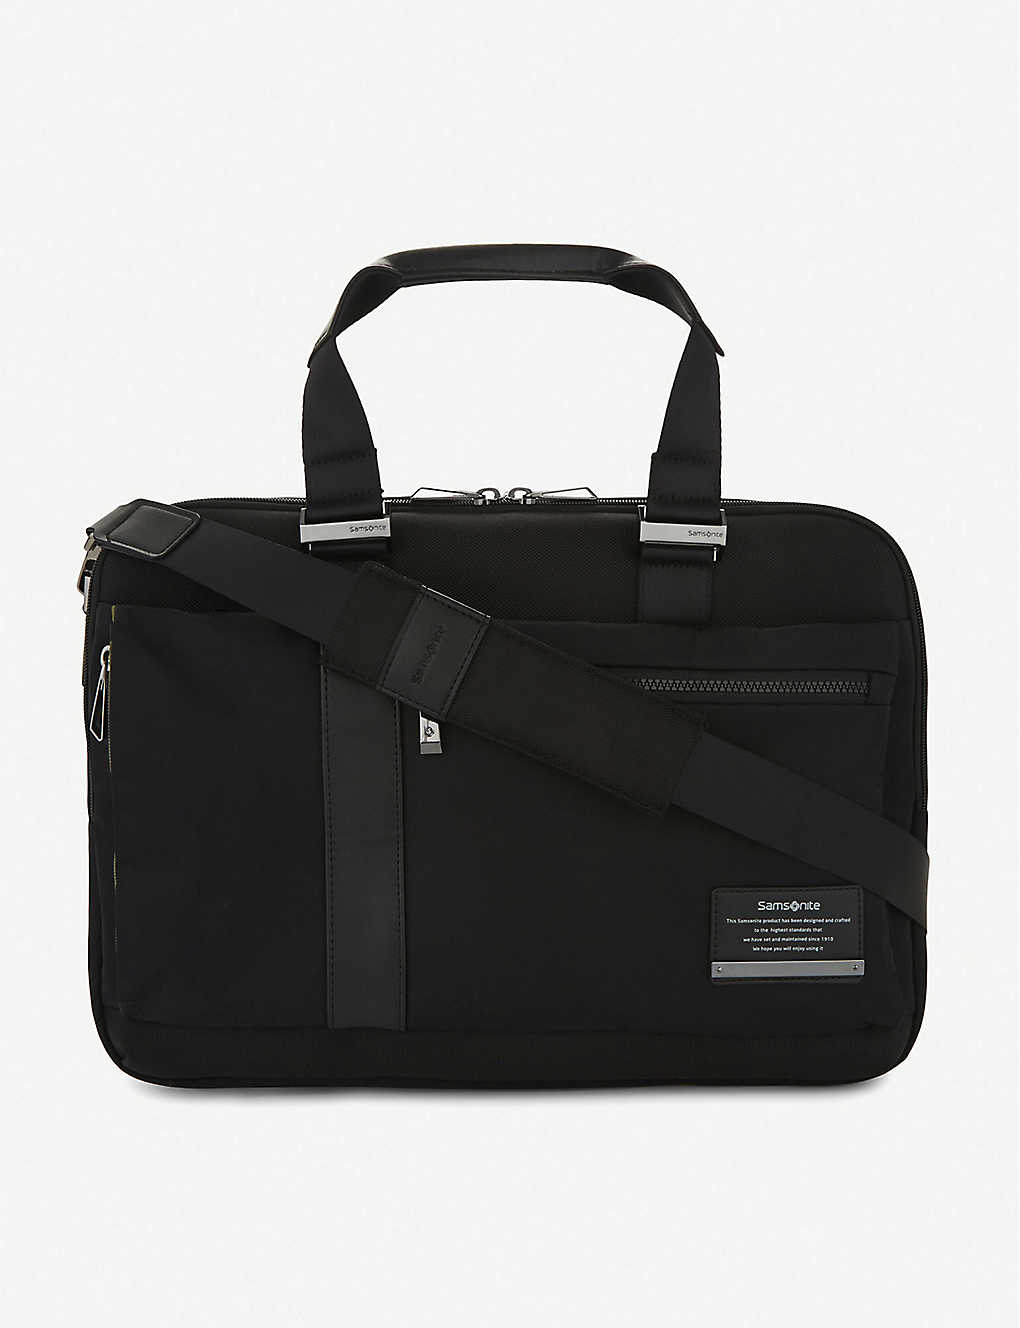 OPEN ROAD: Openroad laptop briefcase